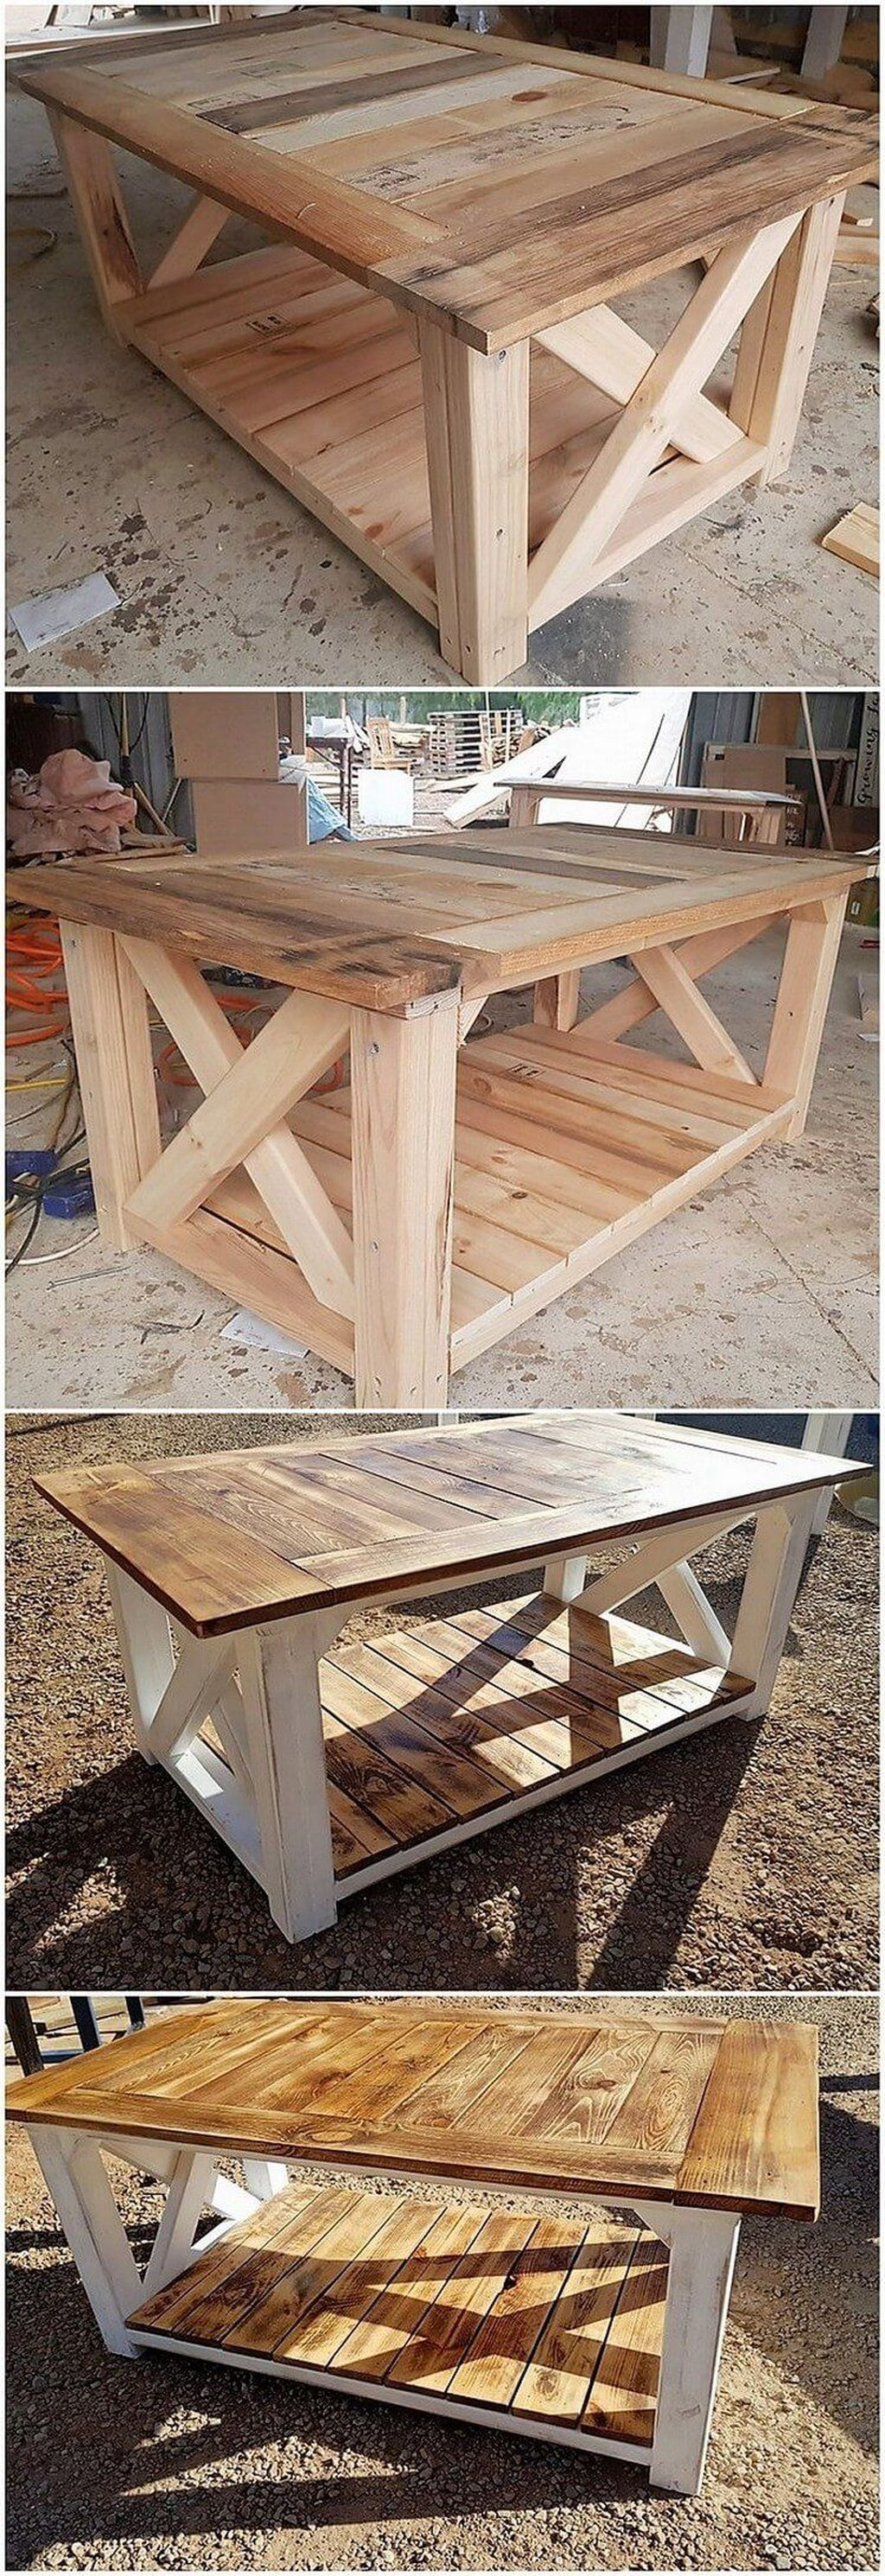 20+ Amazing Diy Wood Project Ideas For Your House #woodprojects